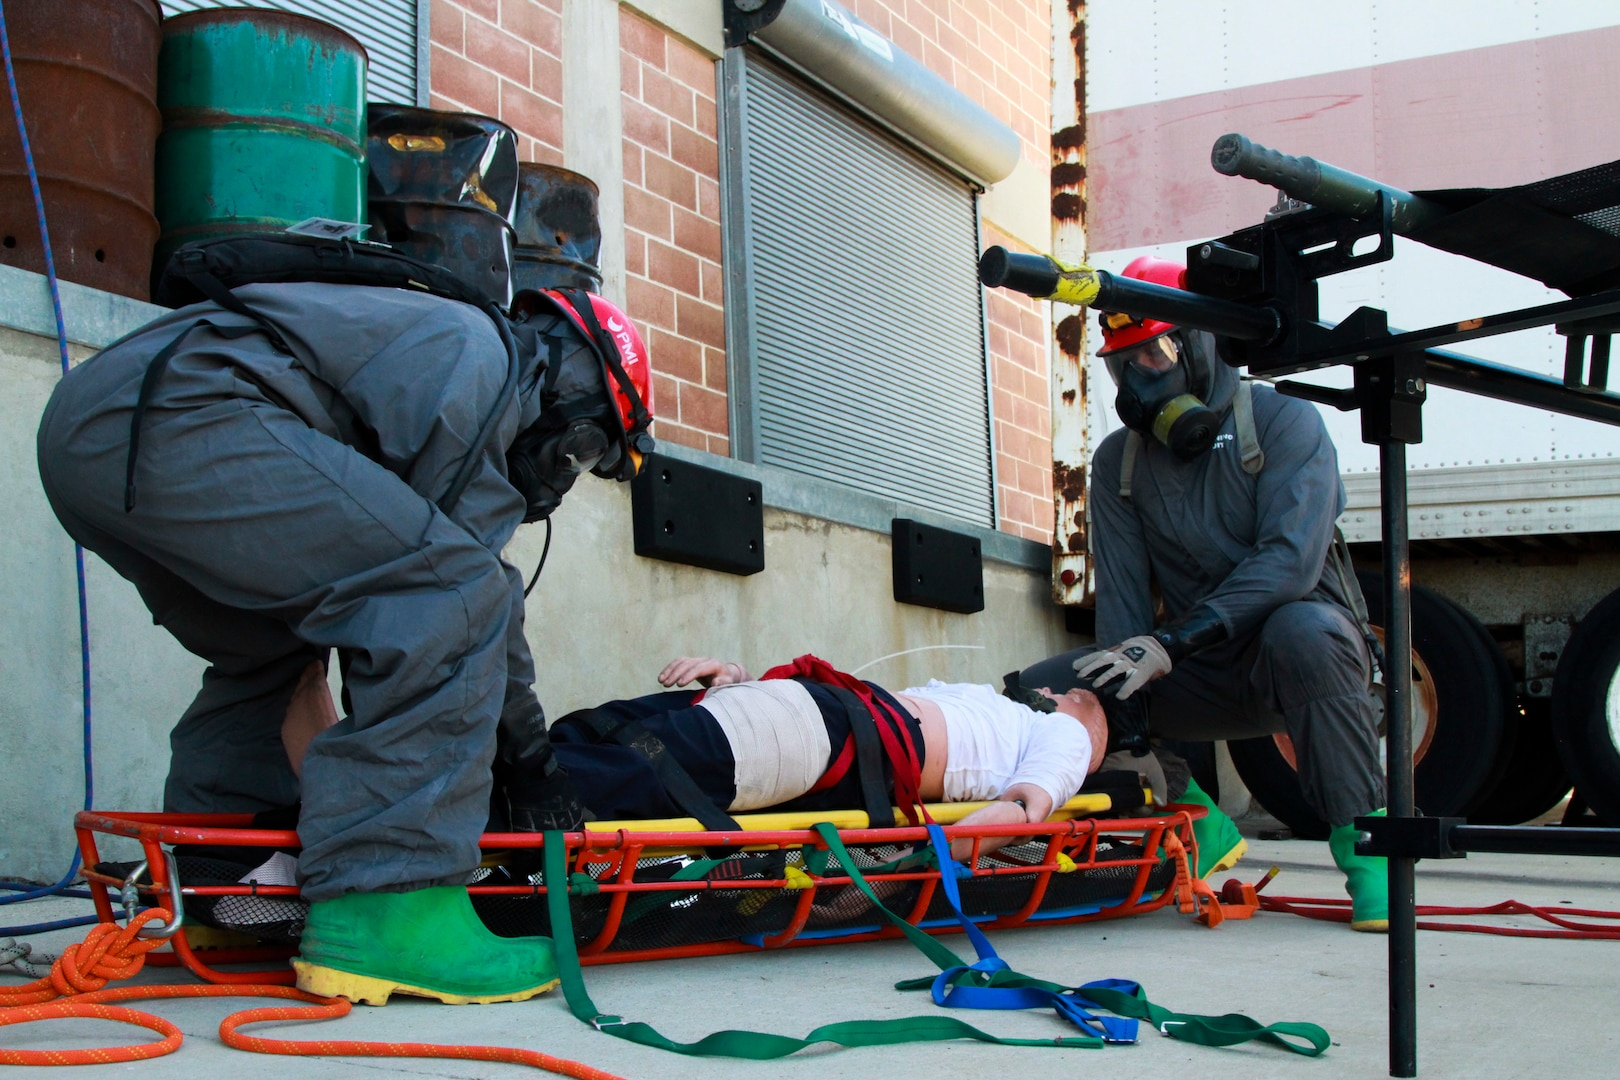 Spc. Robert Auman, 68th Engineer Construction Company horizontal engineer, and Spc. Malcolm Dent, 68th Engineer Construction Company vertical engineer, prepare a victim for transport to the medics during the Urban Search and Rescue lane at the San Antonio Fire Academy Nov. 5. This lane is part of a larger exercise run by U.S. Army North's Civil Support Training Activity, a unit comprised of teams that train with state and regional forces on a range of tiered chemical, biological, radiological and nuclear technical tasks that aid in the effective support of civil authorities during a response.